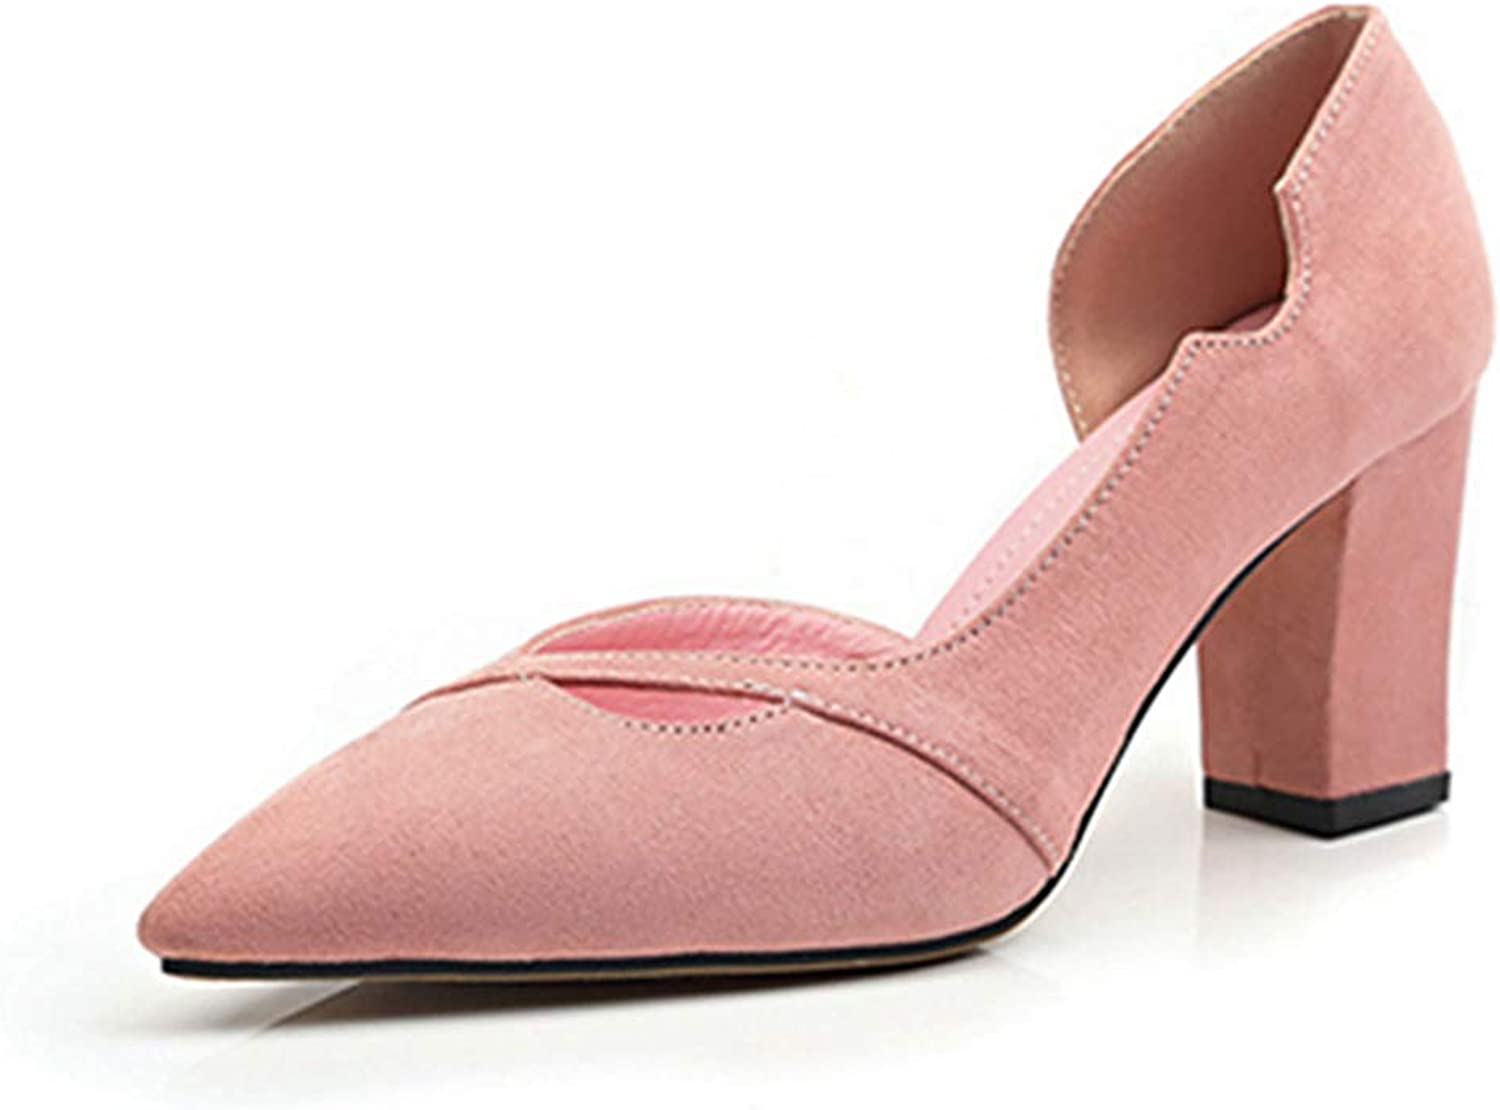 Kyle Walsh Pa Women's Elegant Pumps Block Heel Pointed Toe Ladies Slip-on Classic High-Heeled shoes